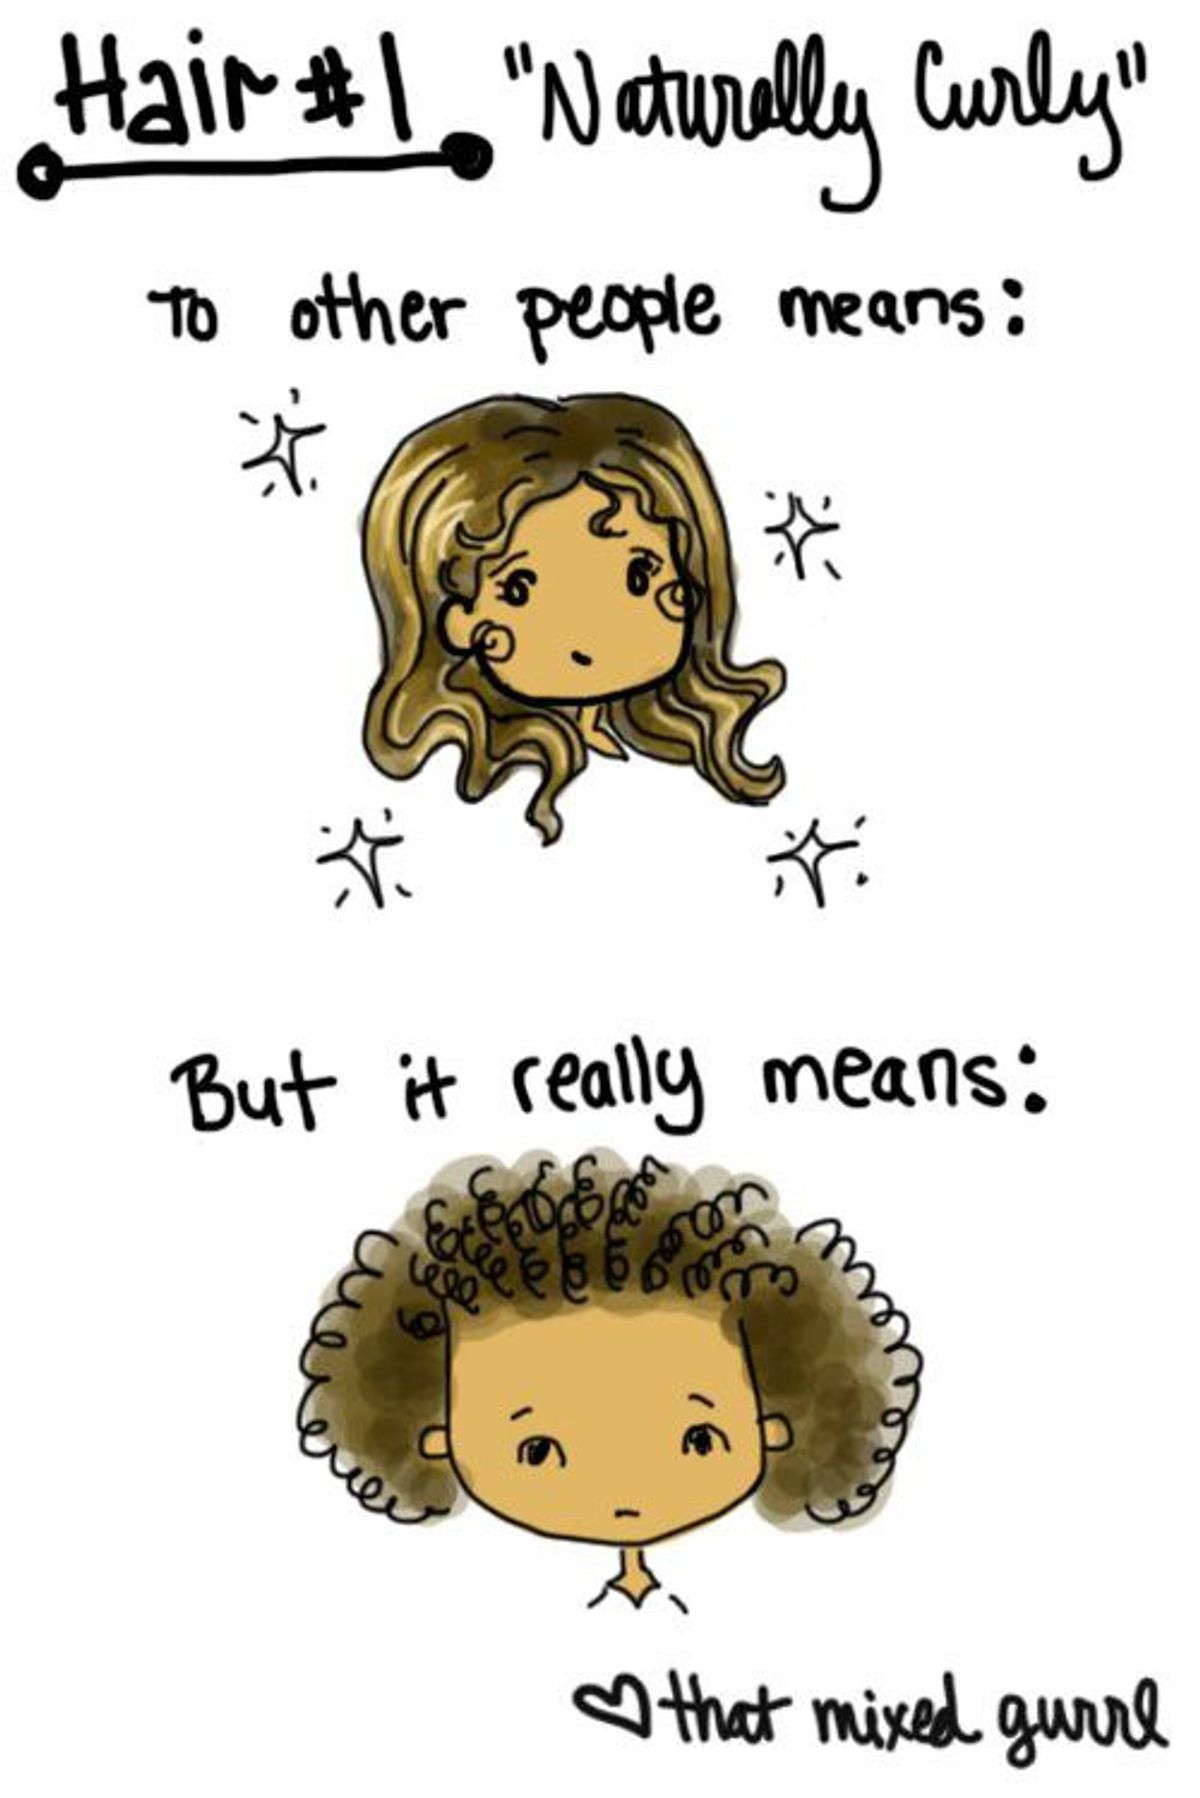 Five Things People With Curly Hair Hear On A Daily Basis